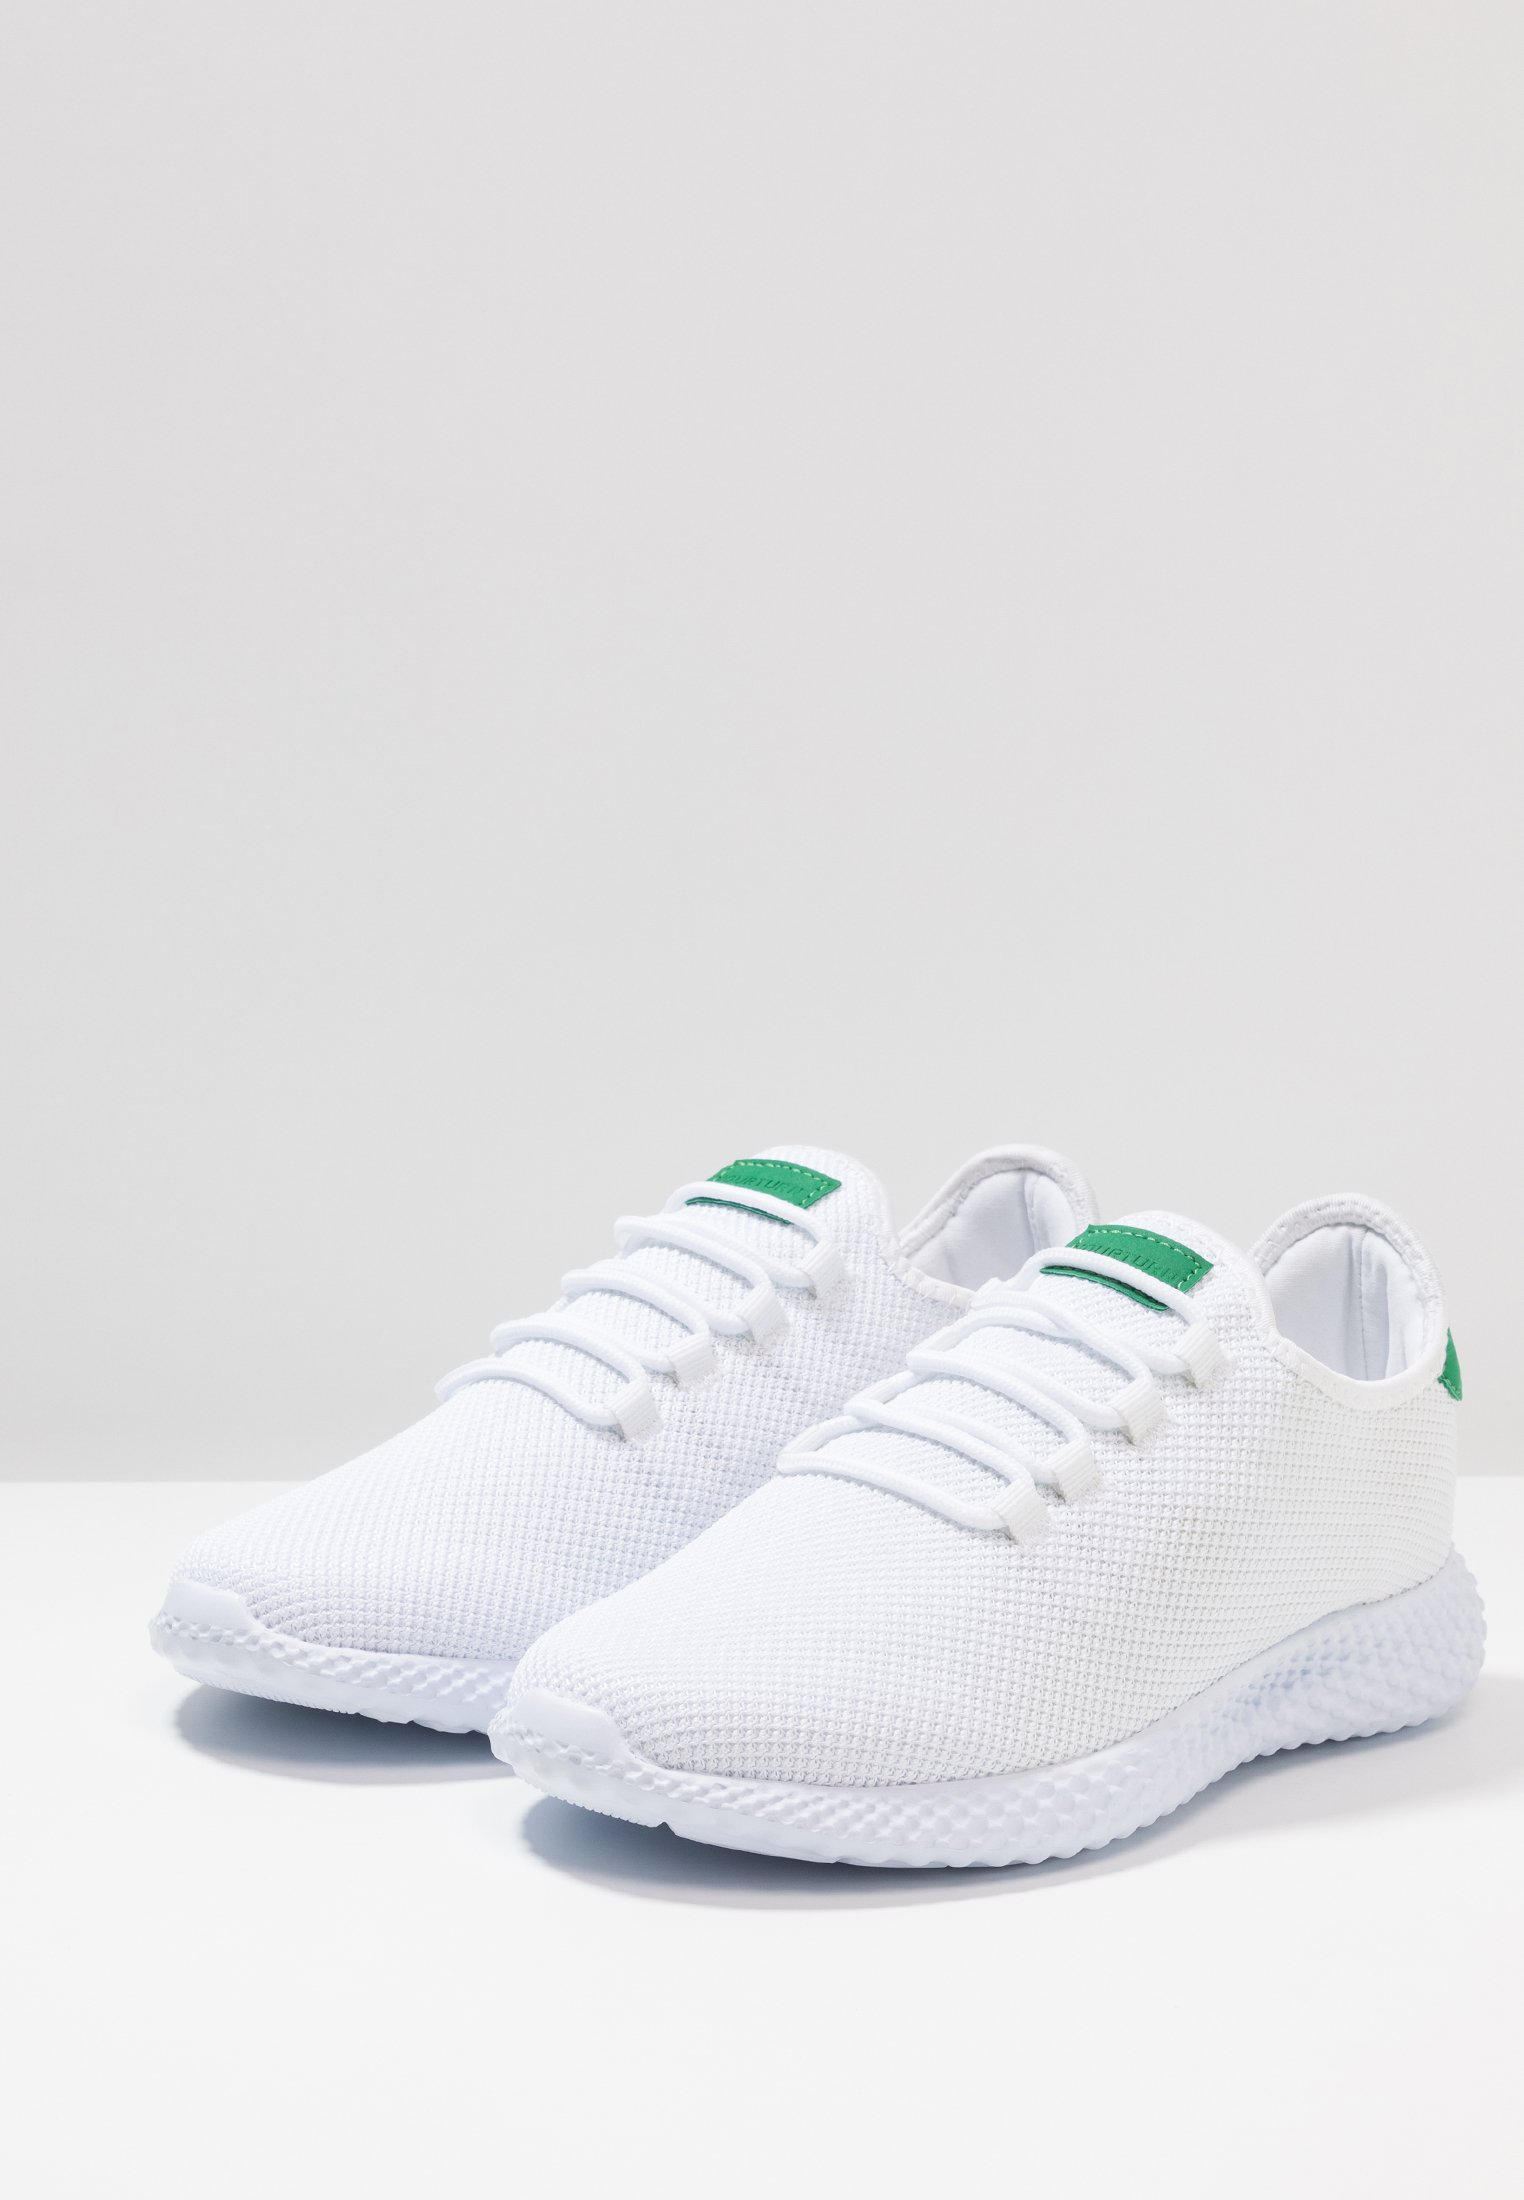 White Sneakers Basse Yourturn Sneakers Basse Yourturn White Sneakers White Basse Yourturn eWYbHED92I